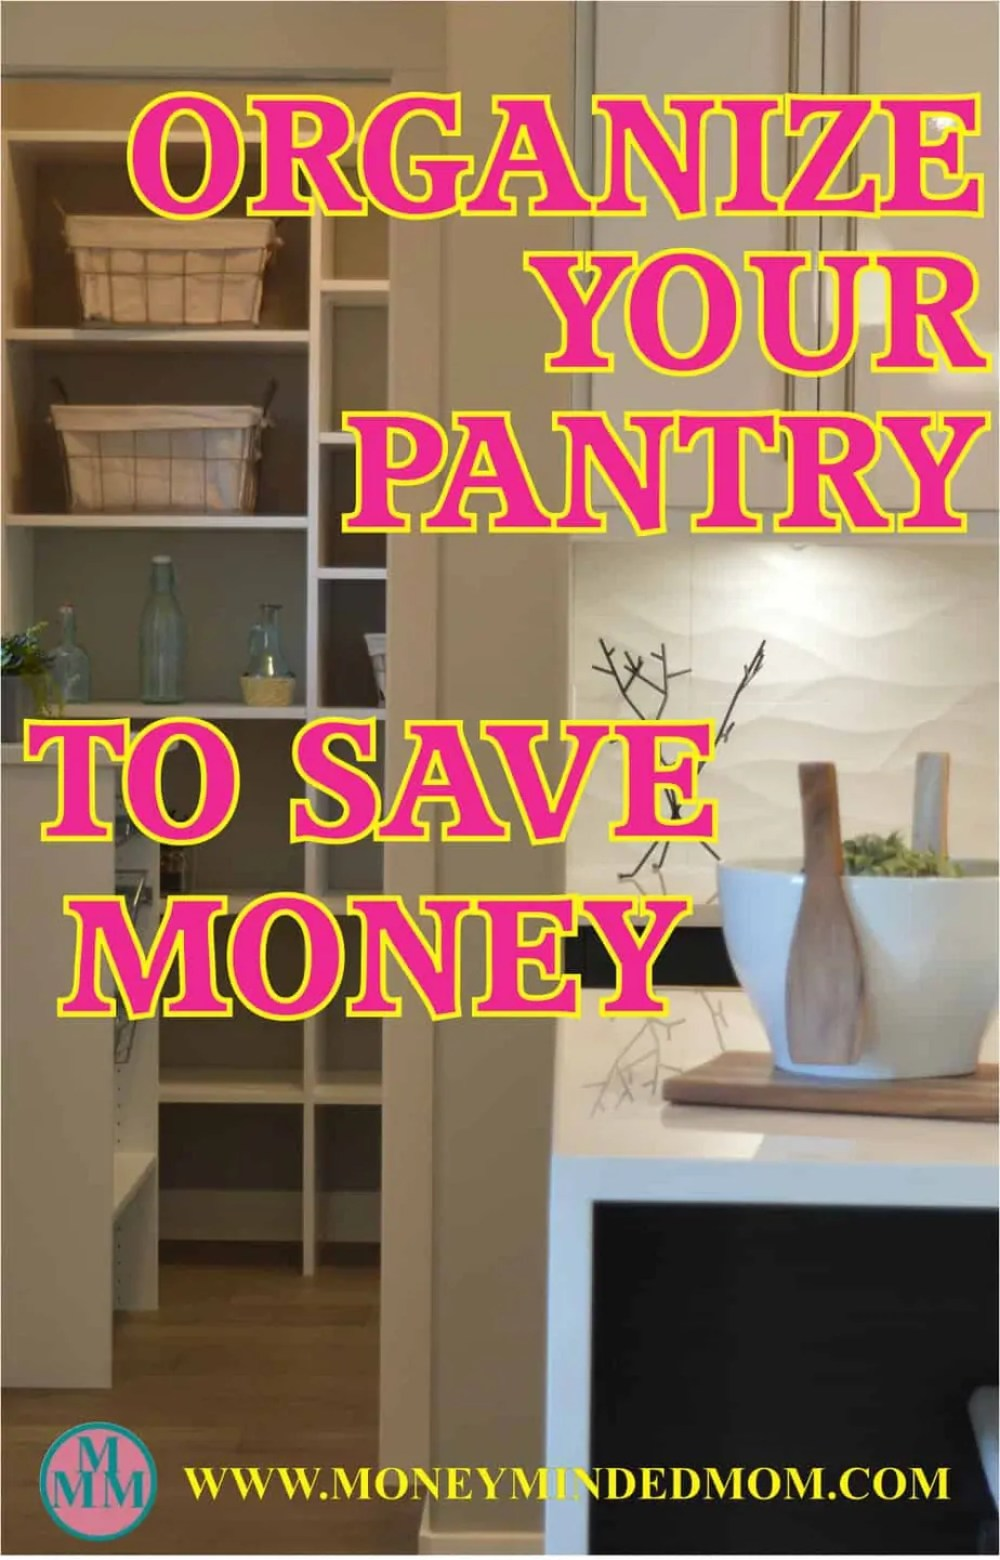 Organize Your Pantry To Save Money - being organized is a huge part of saving money. Read on to learn how you can organize your pantry to save money.